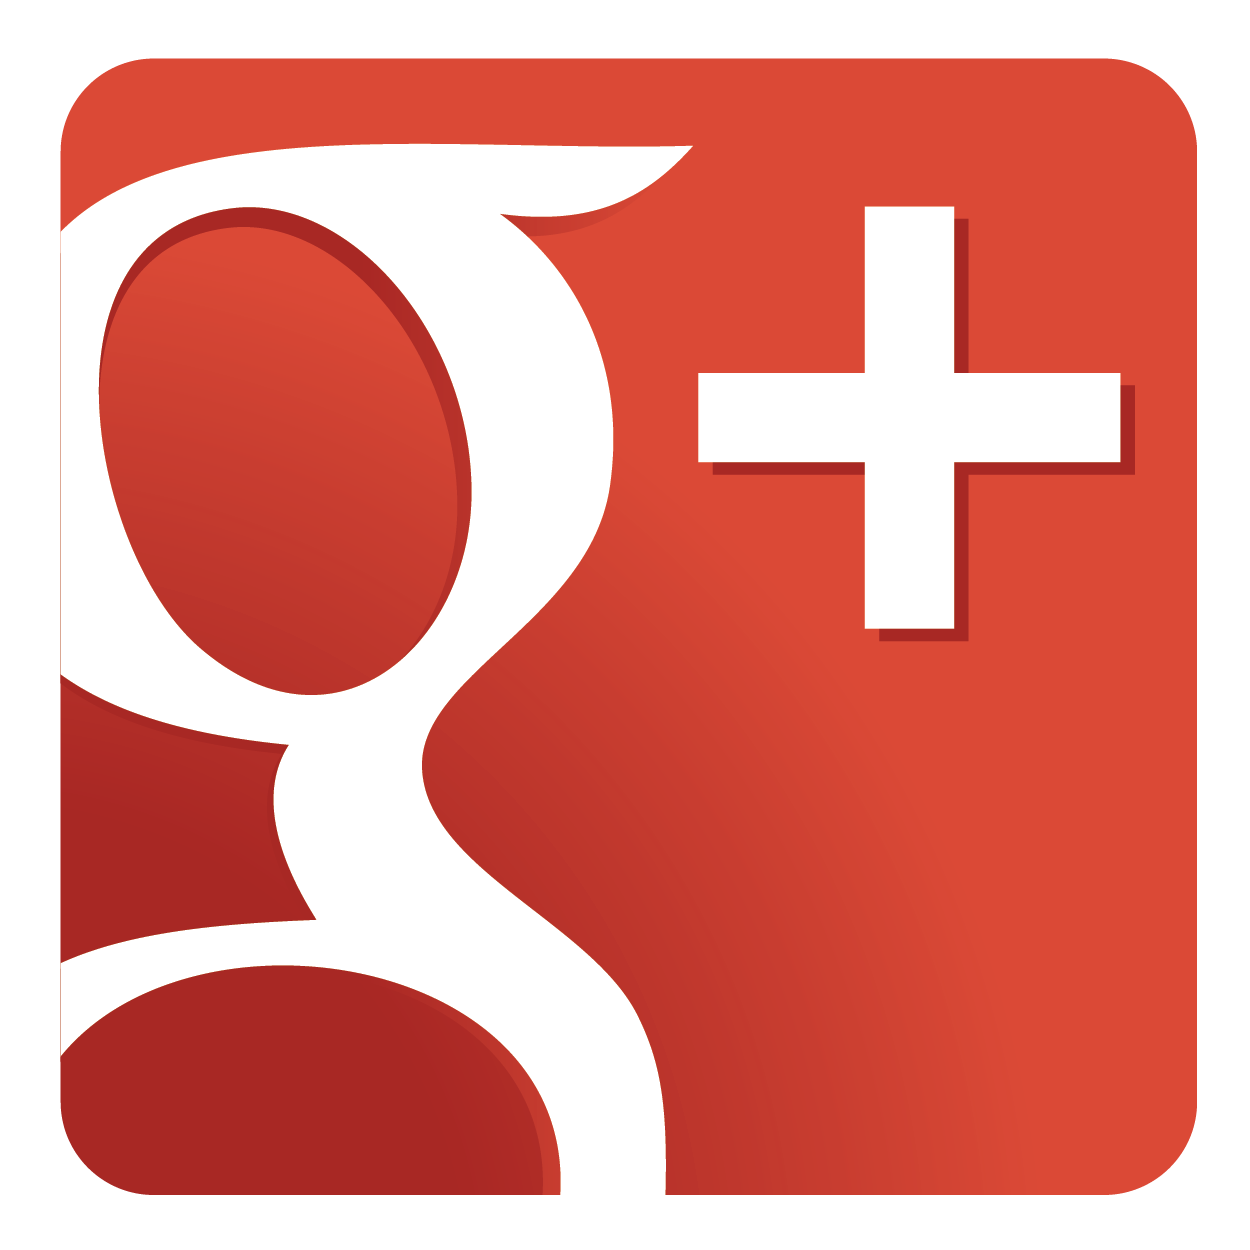 GooglePlus-Logo-02